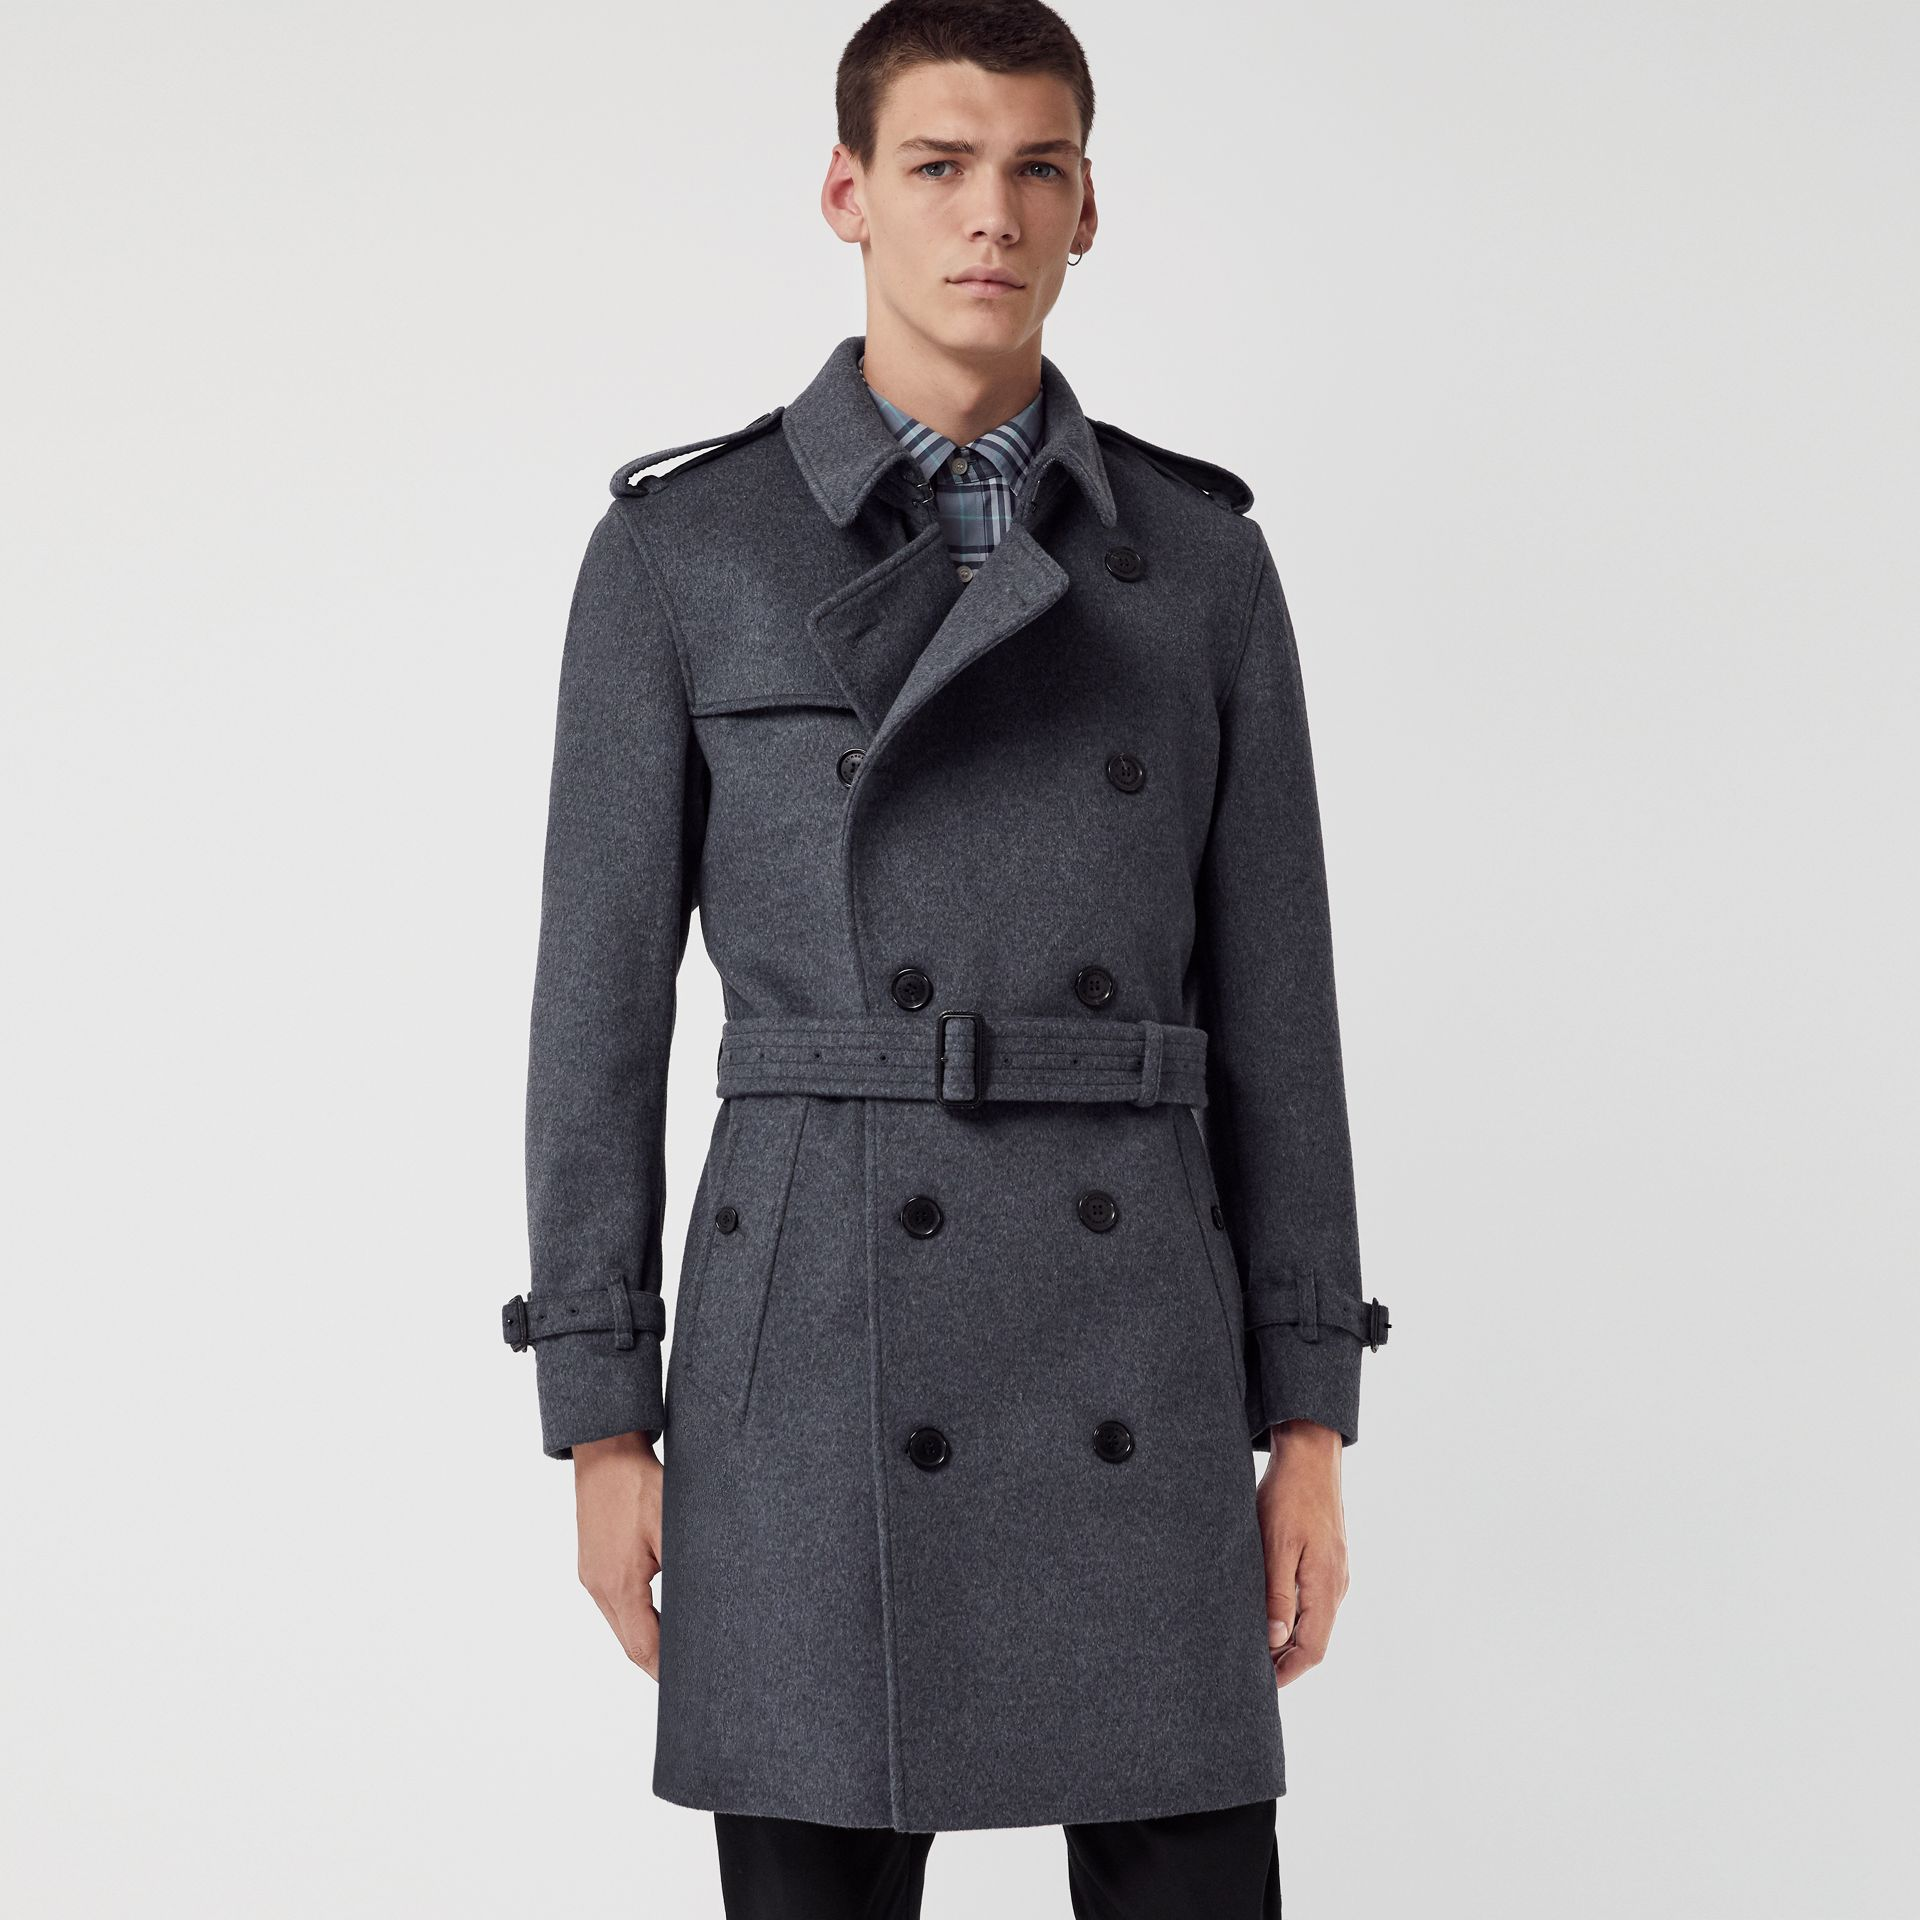 Wool Cashmere Trench Coat in Pewter Melange - Men | Burberry United States - gallery image 5